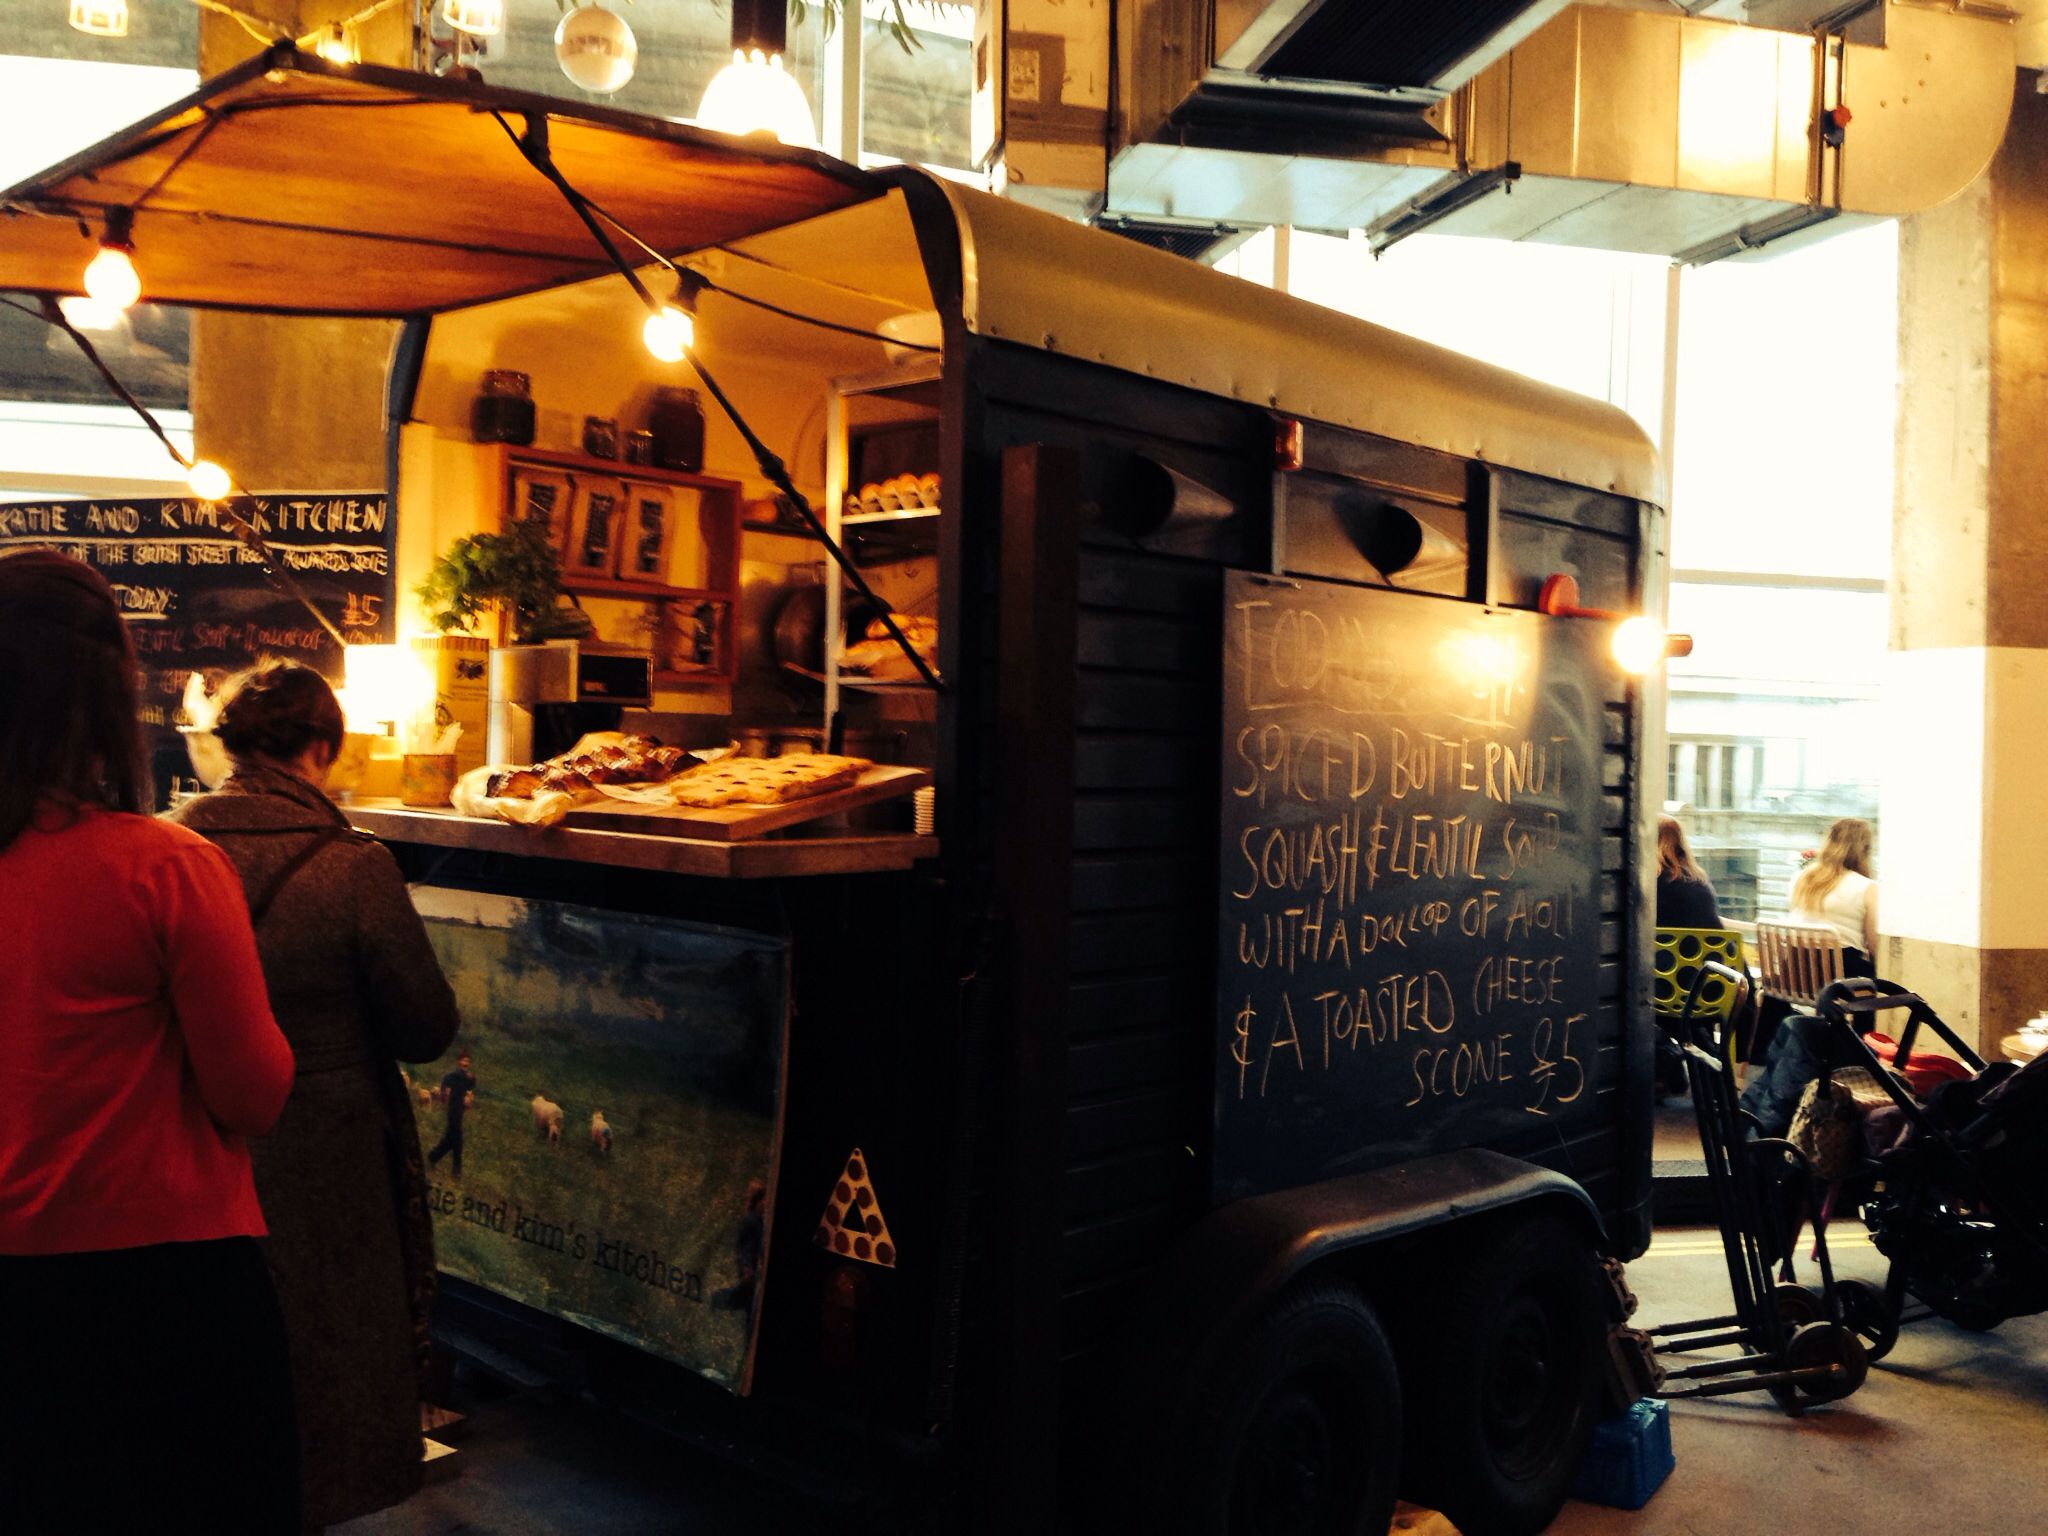 Food trailer, trailers and centre on pinterest